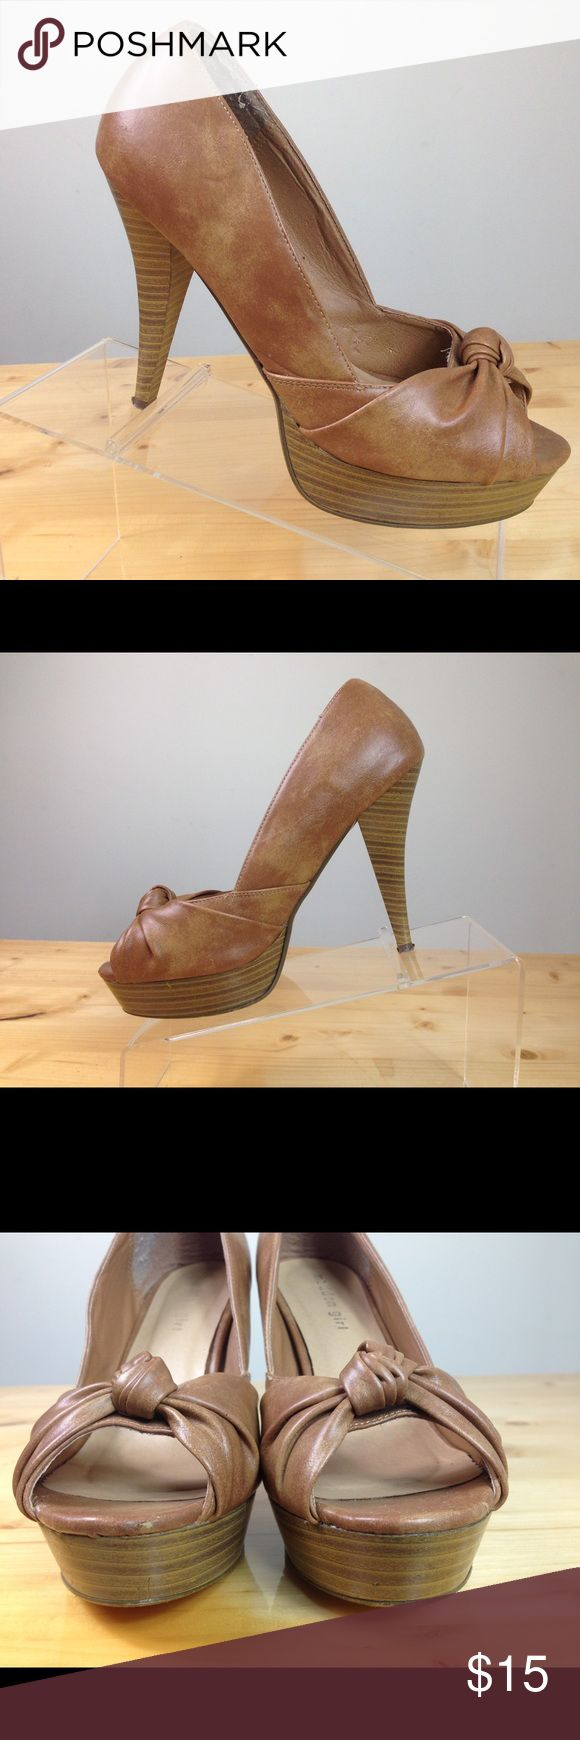 Madden Girl brown bow tie open toe high heel pumps Thank you so much for looking if you would like any additional questions just contact me!  Have a great day! Madden Girl Shoes Heels